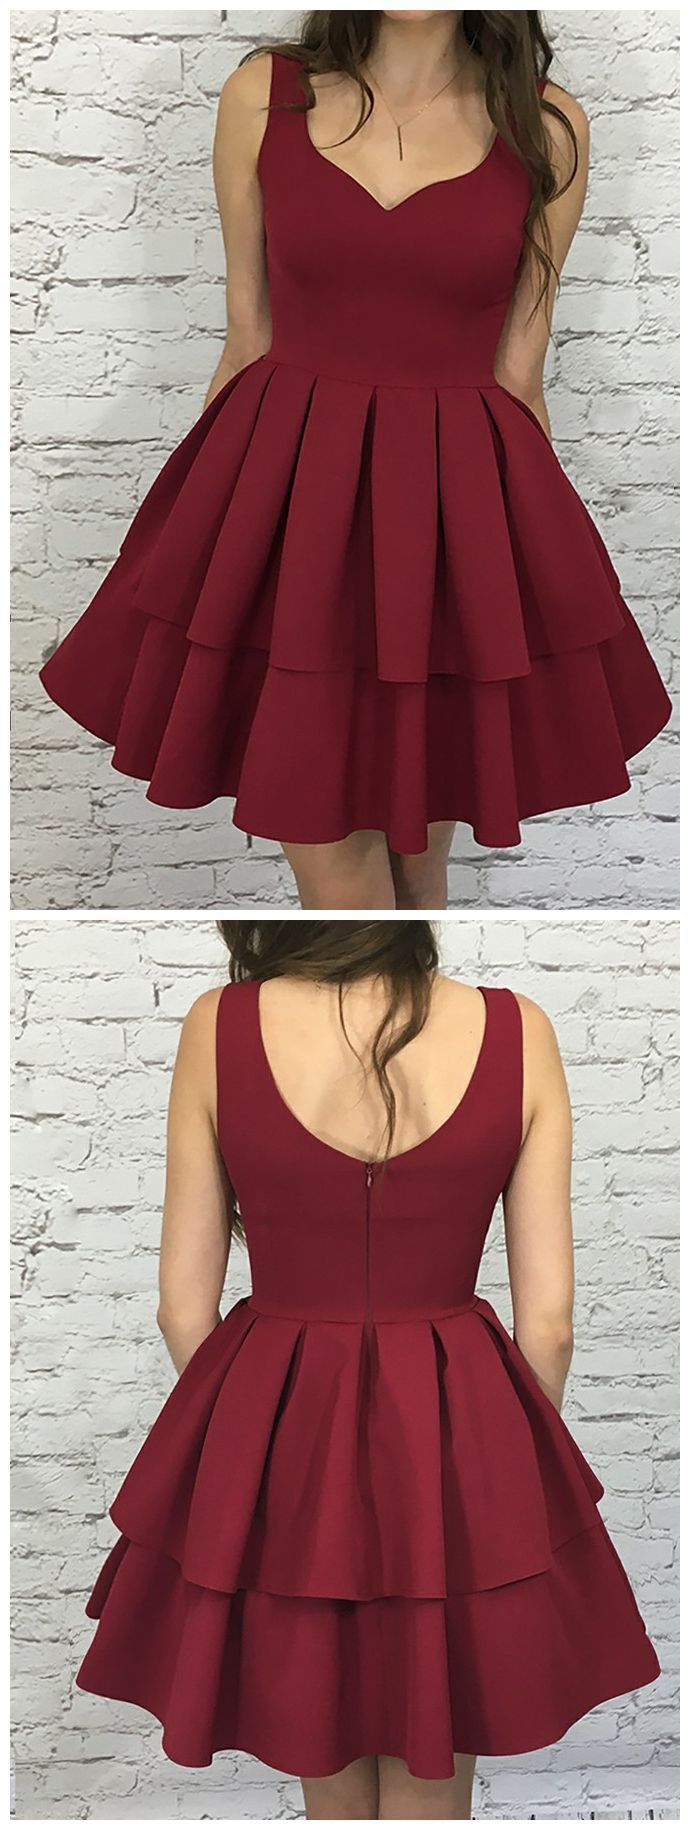 Simple burgundy party dressestiered short homecoming dresszipper